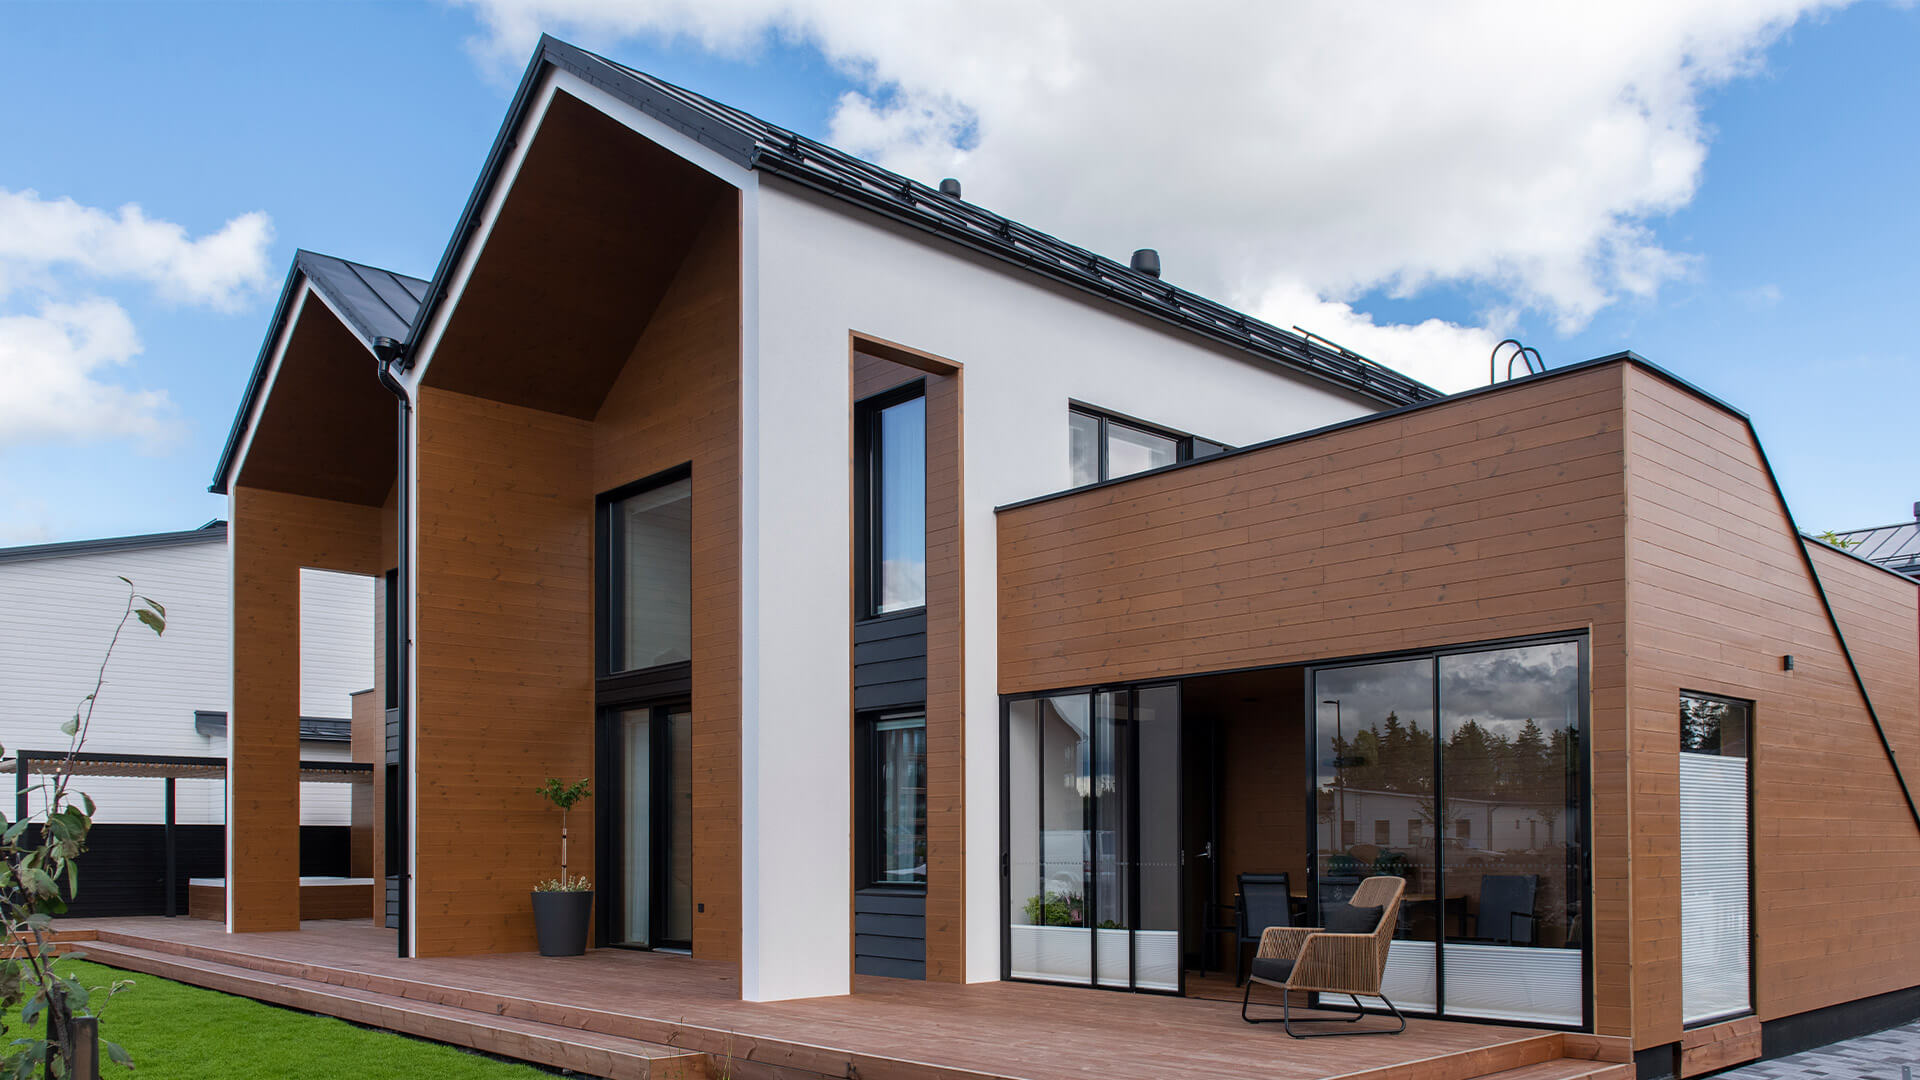 Lunawood thermowood Duplio facade and decking